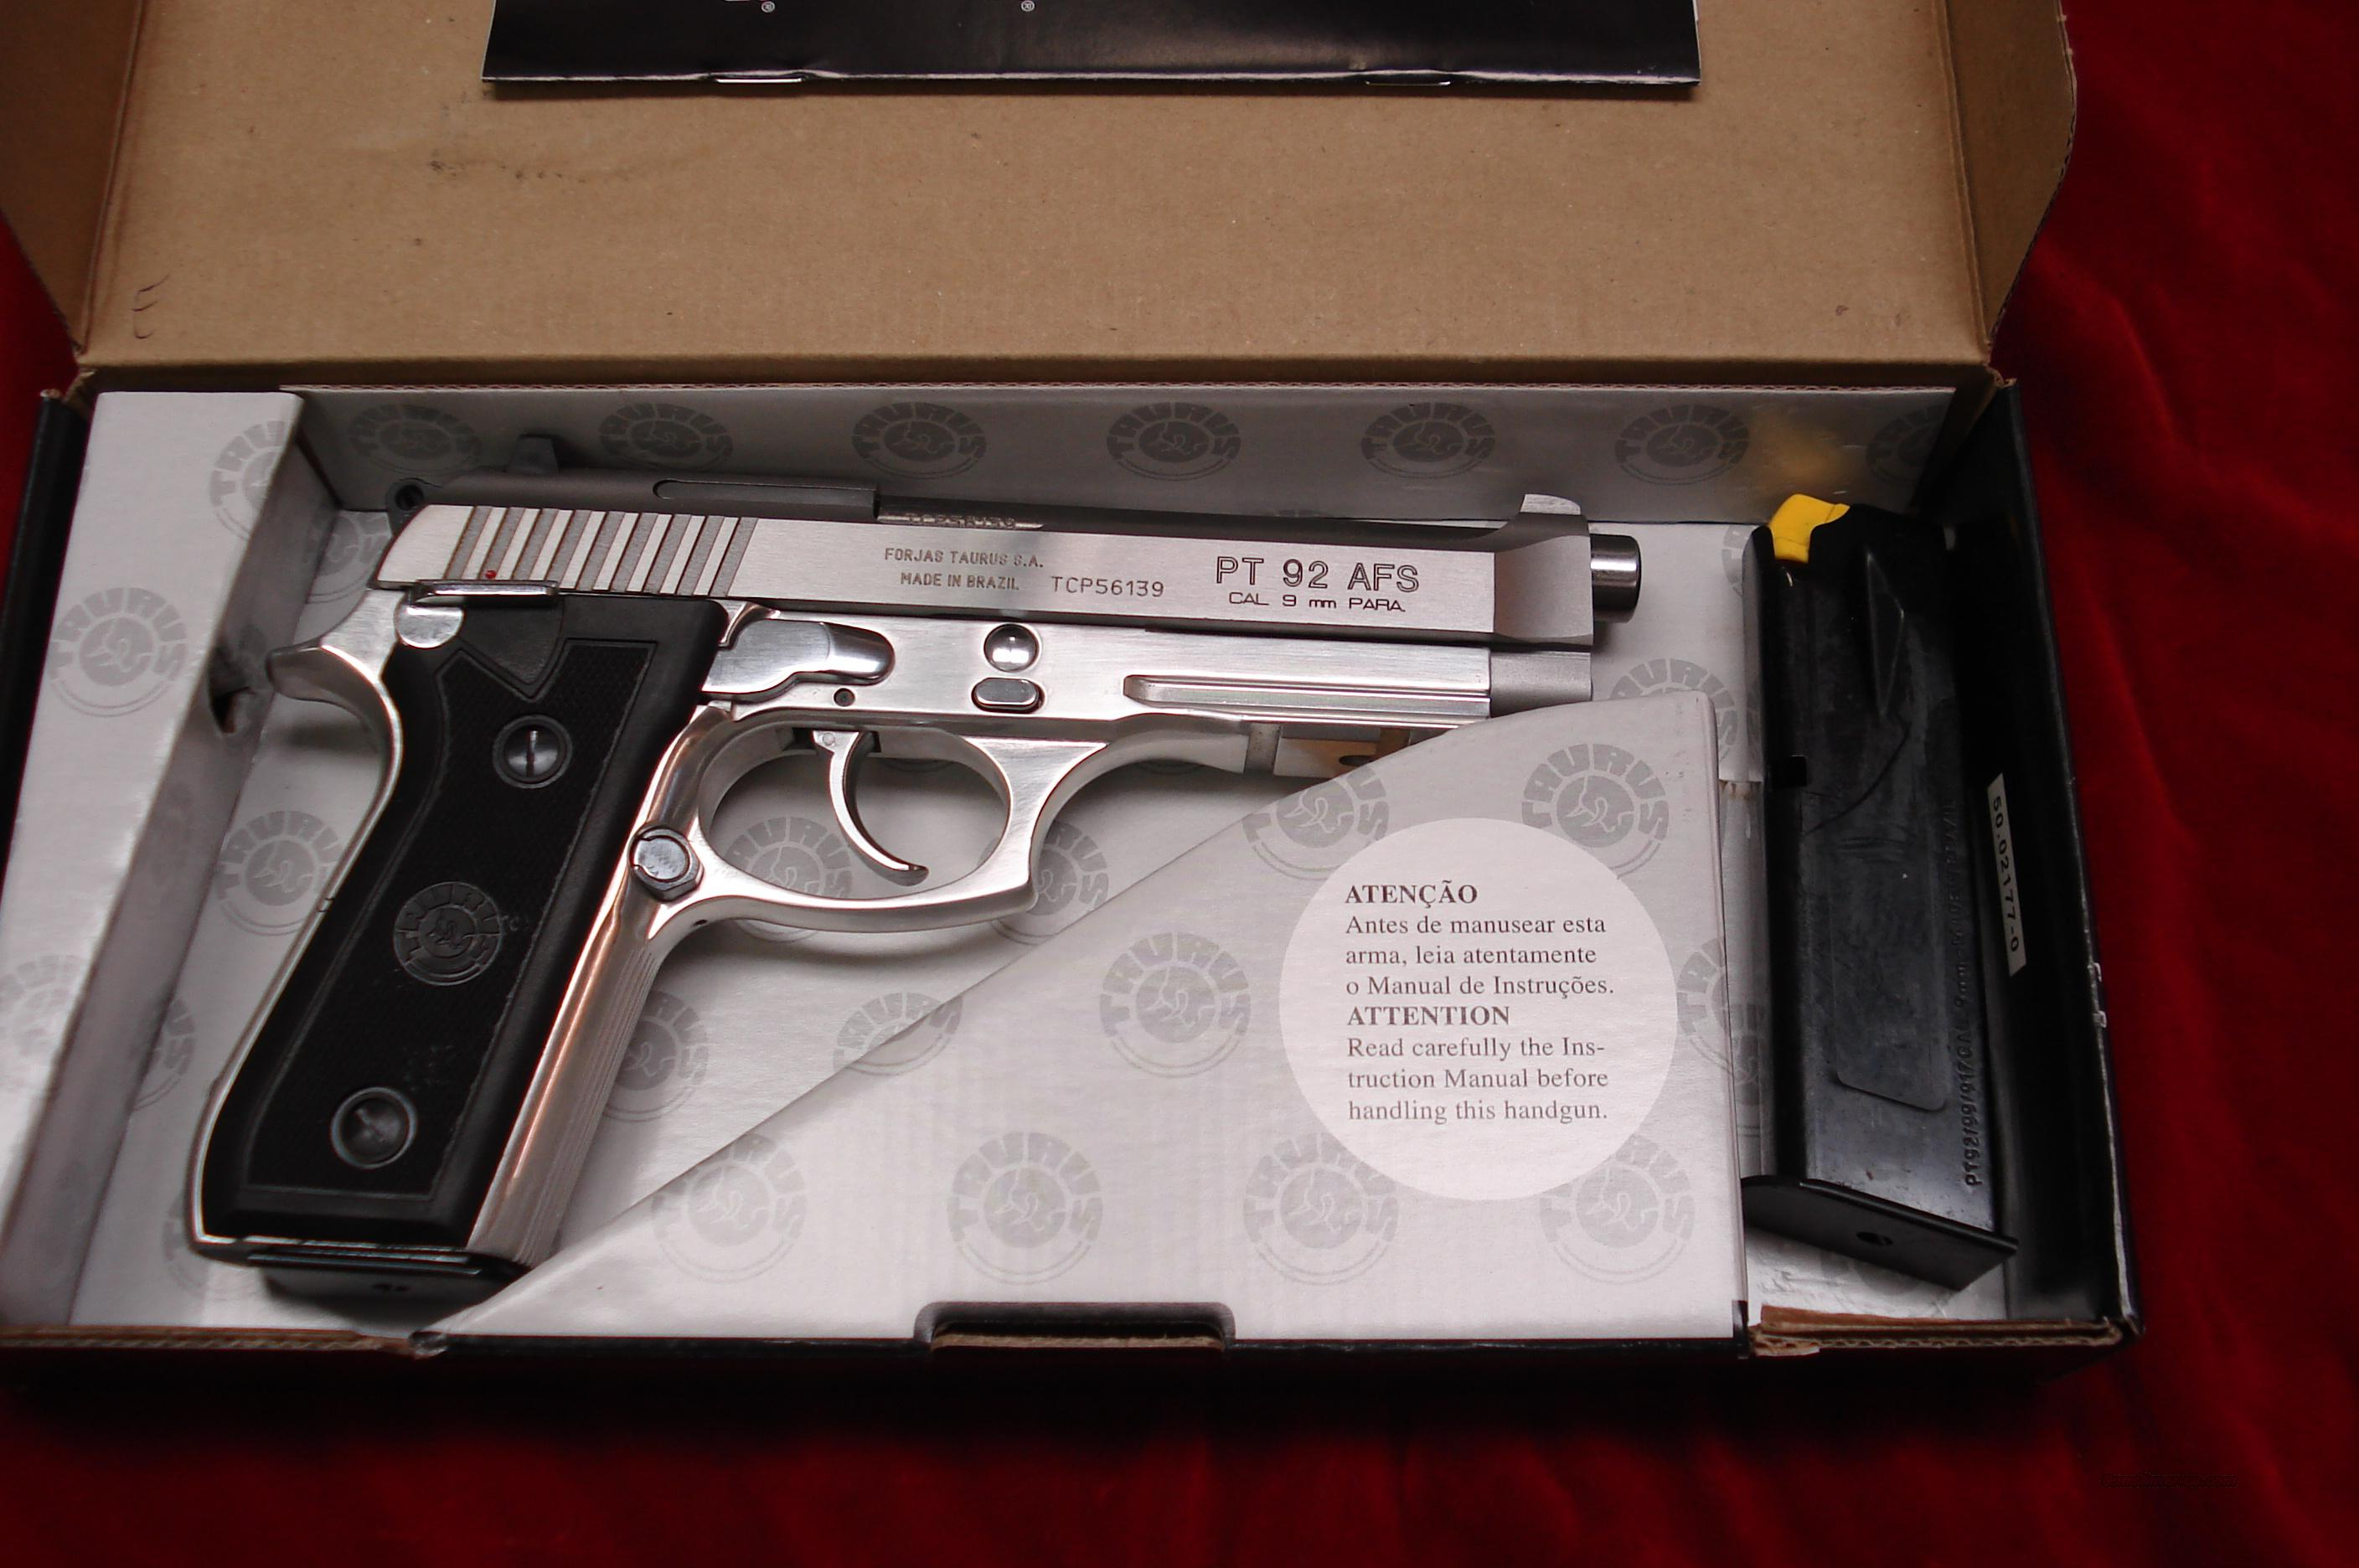 TAURUS PT 92 AFS STAINLESS 9MM WITH TAC RAIL NEW   Guns > Pistols > Taurus Pistols/Revolvers > Pistols > Steel Frame